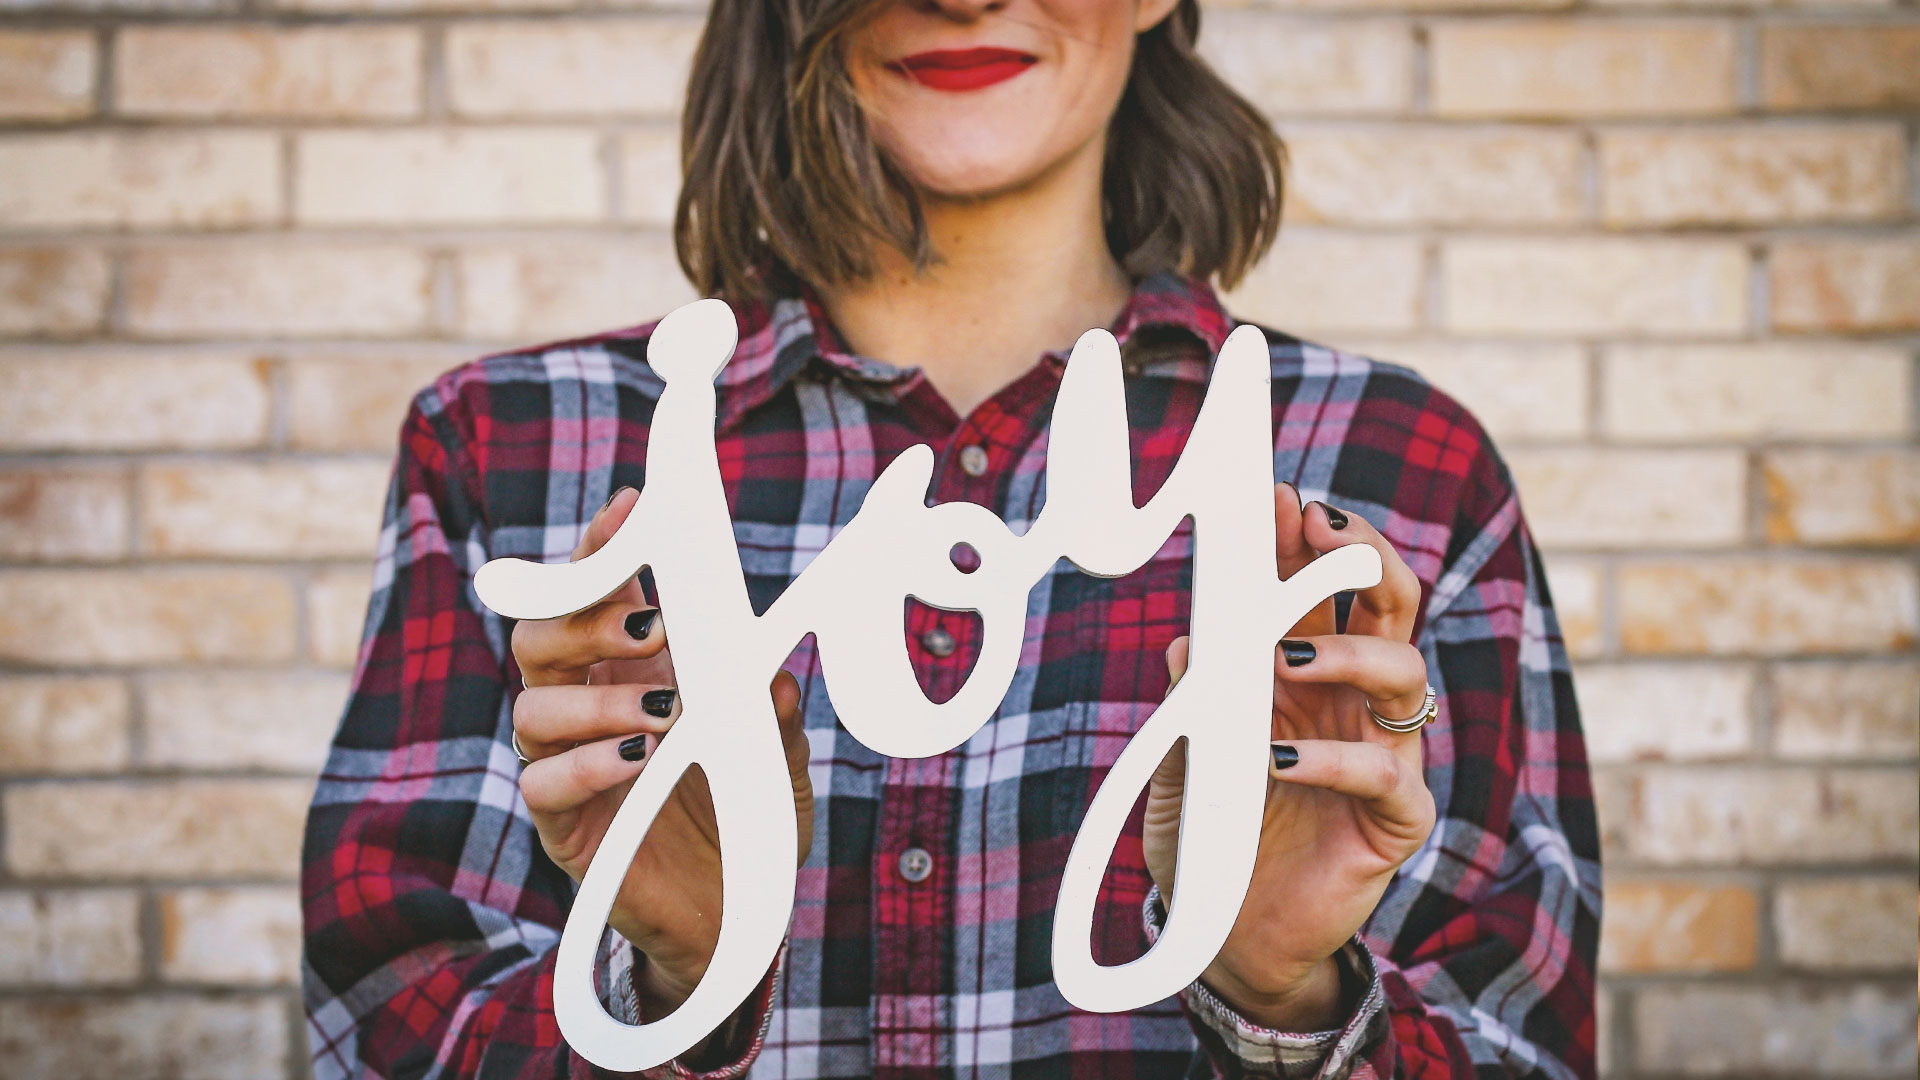 biblical meaning of joy